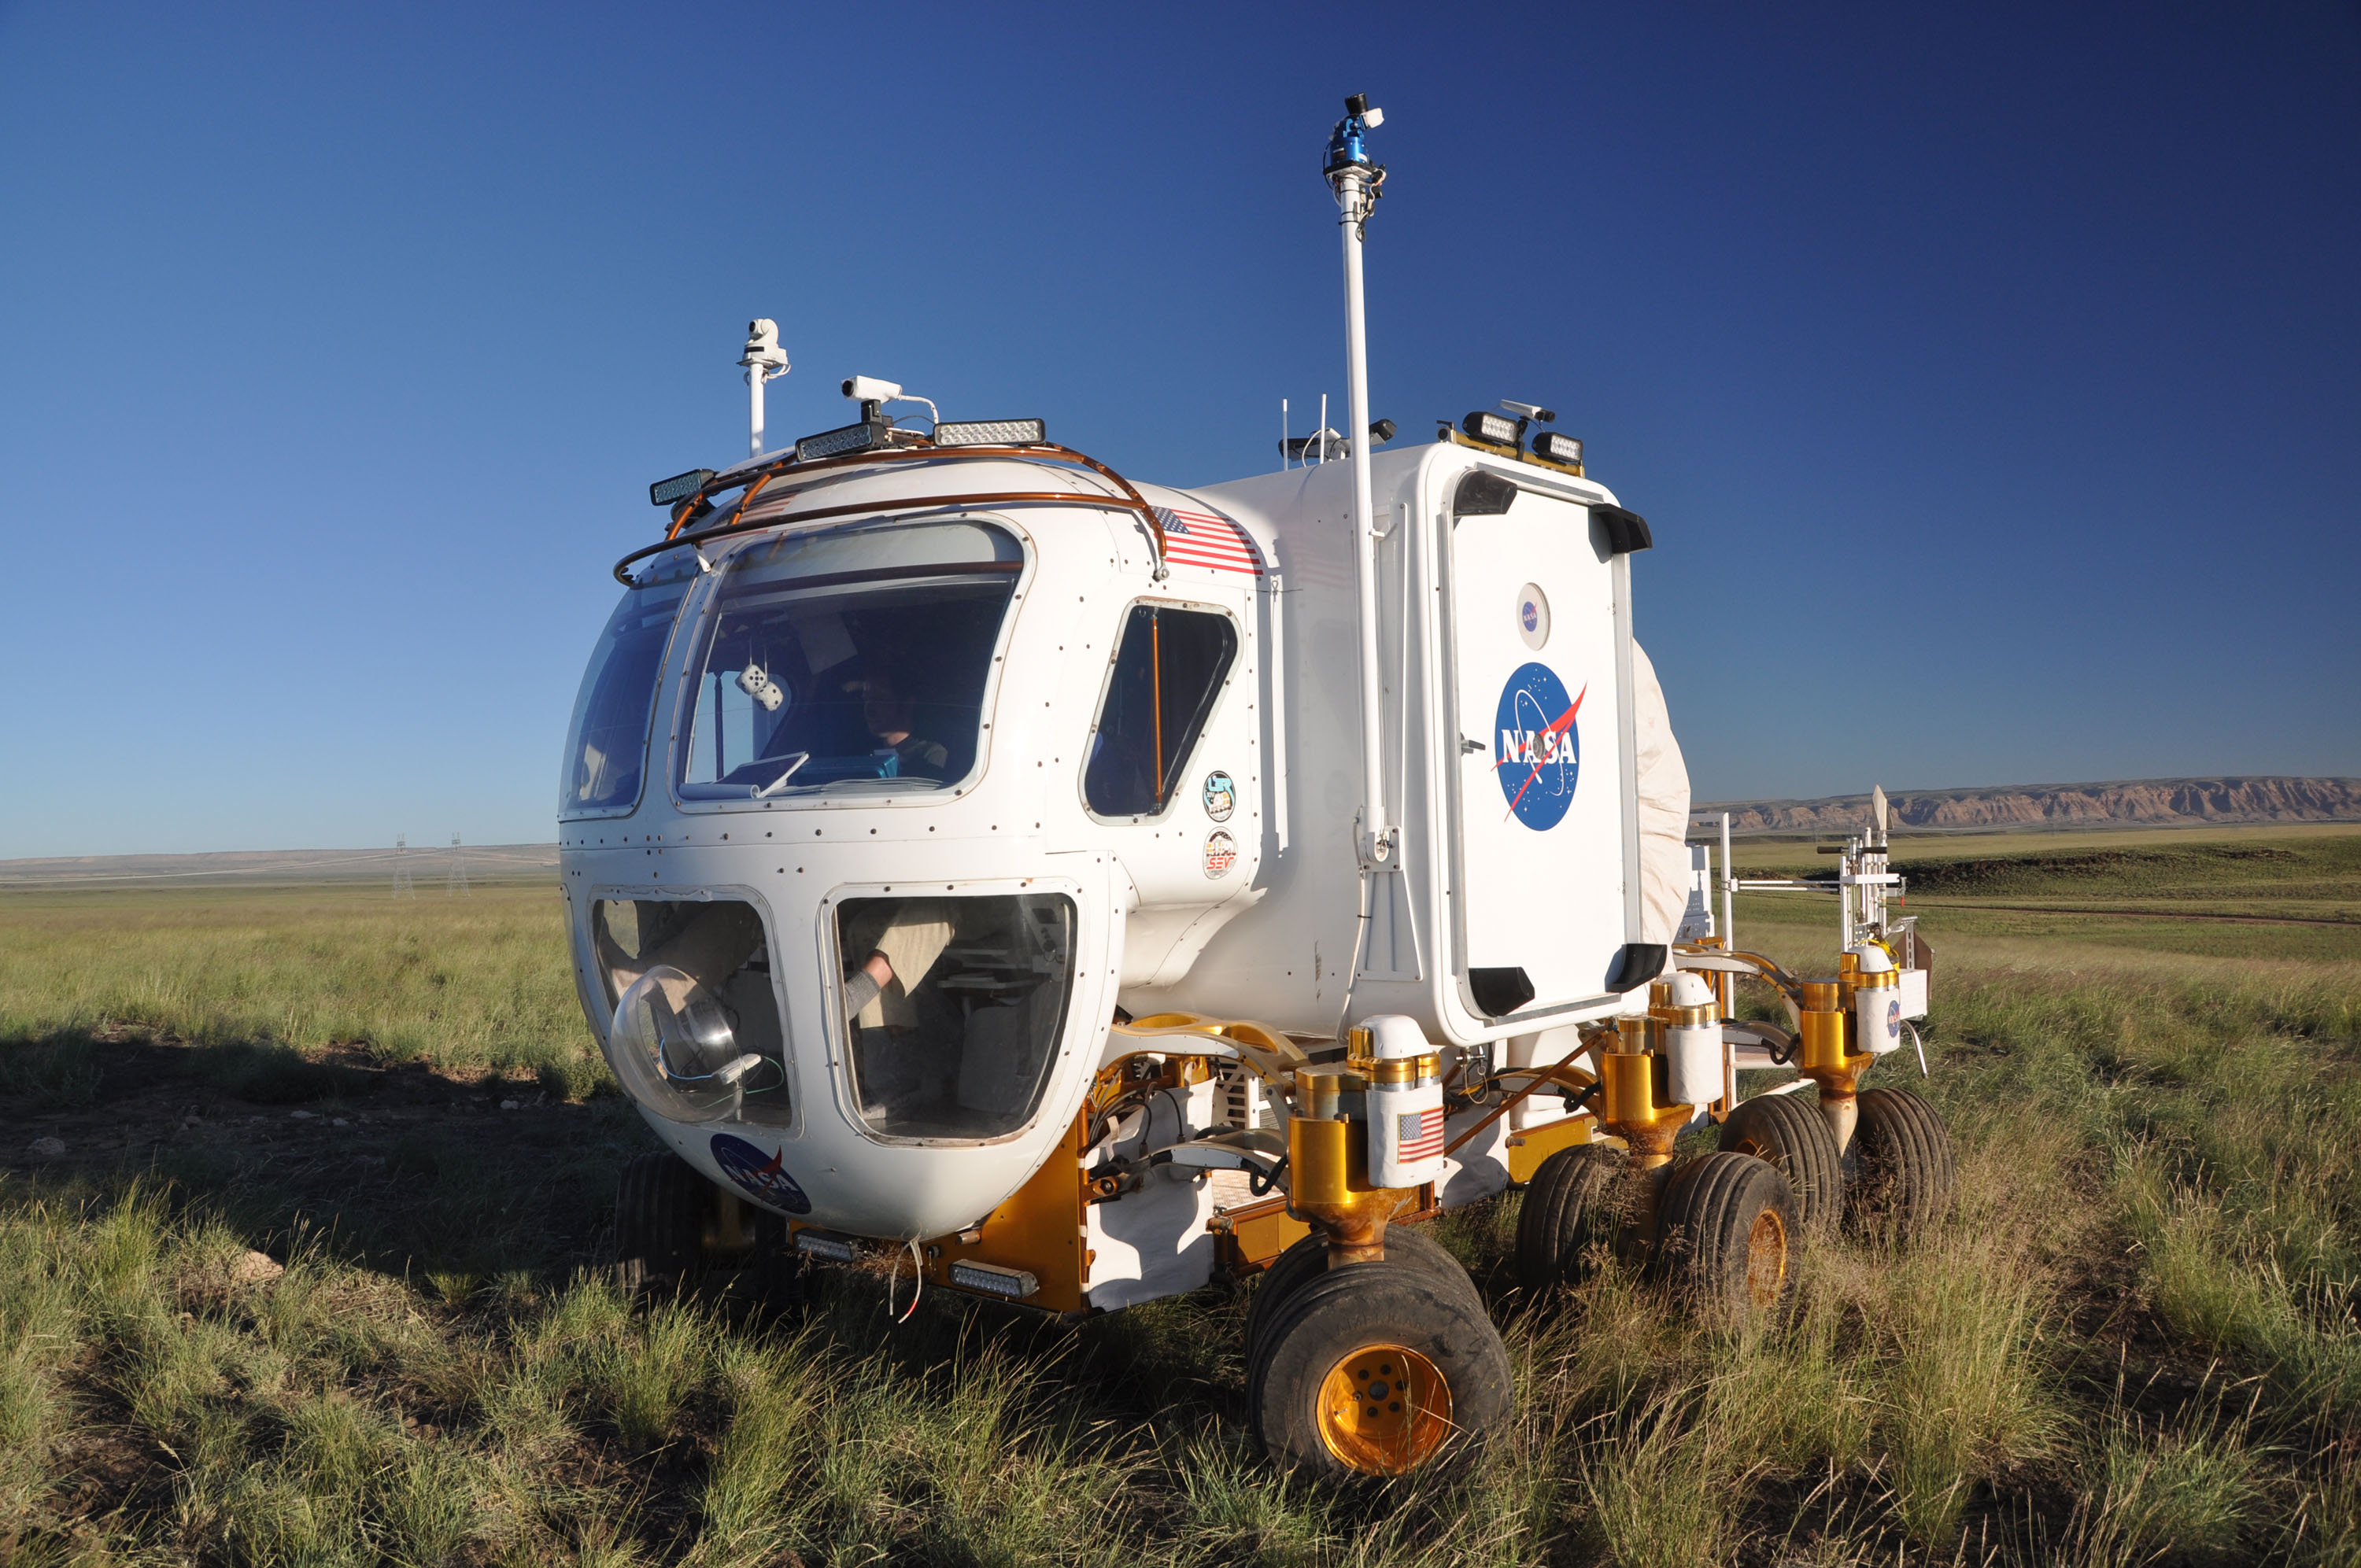 nasa space exploration vehicle - photo #2